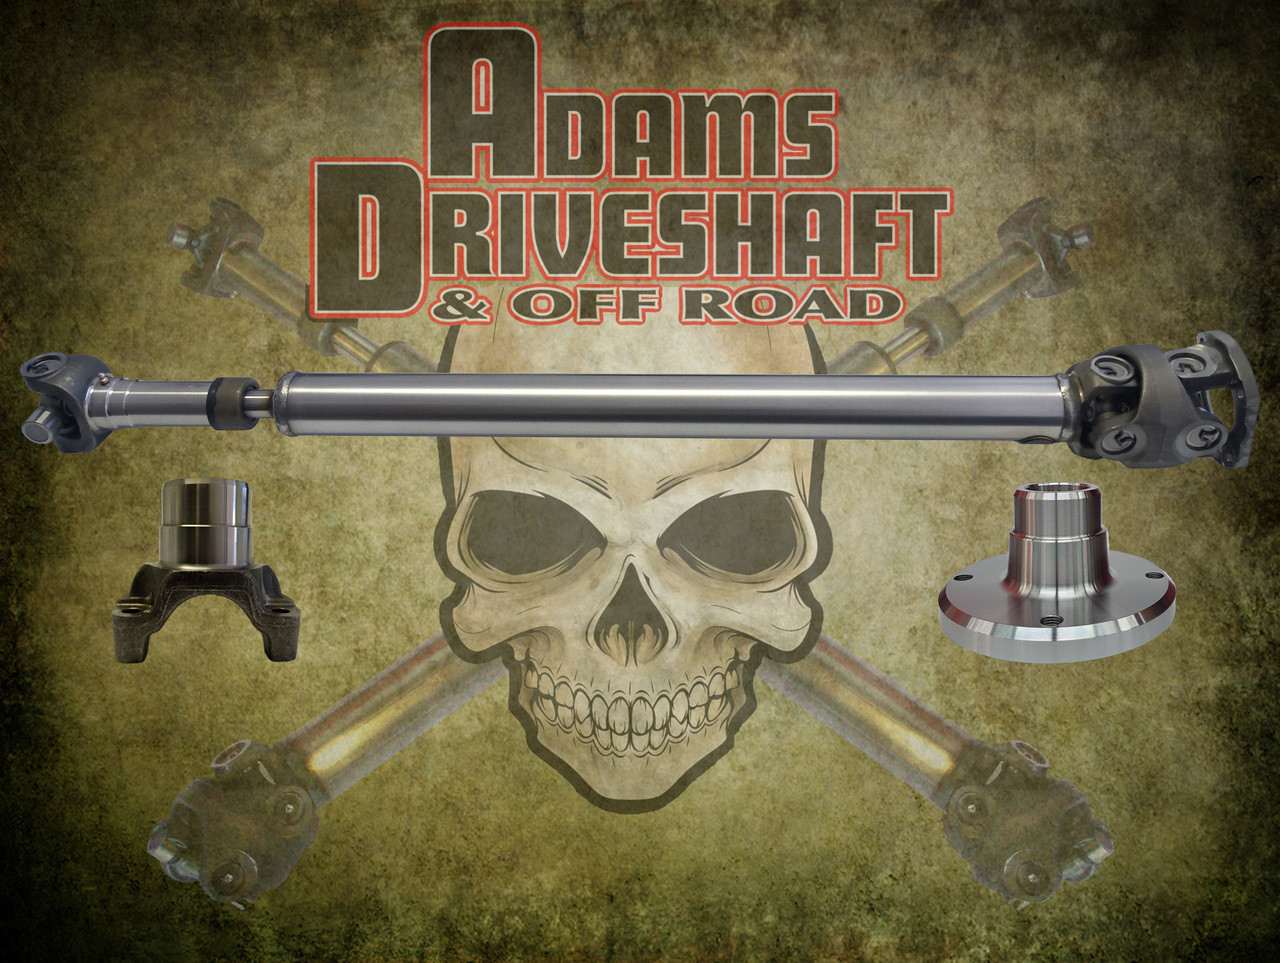 ADAMS DRIVESHAFT JL RUBICON REAR 1350 CV DRIVESHAFT SOLID U-joints [EXTREME  DUTY SERIES]